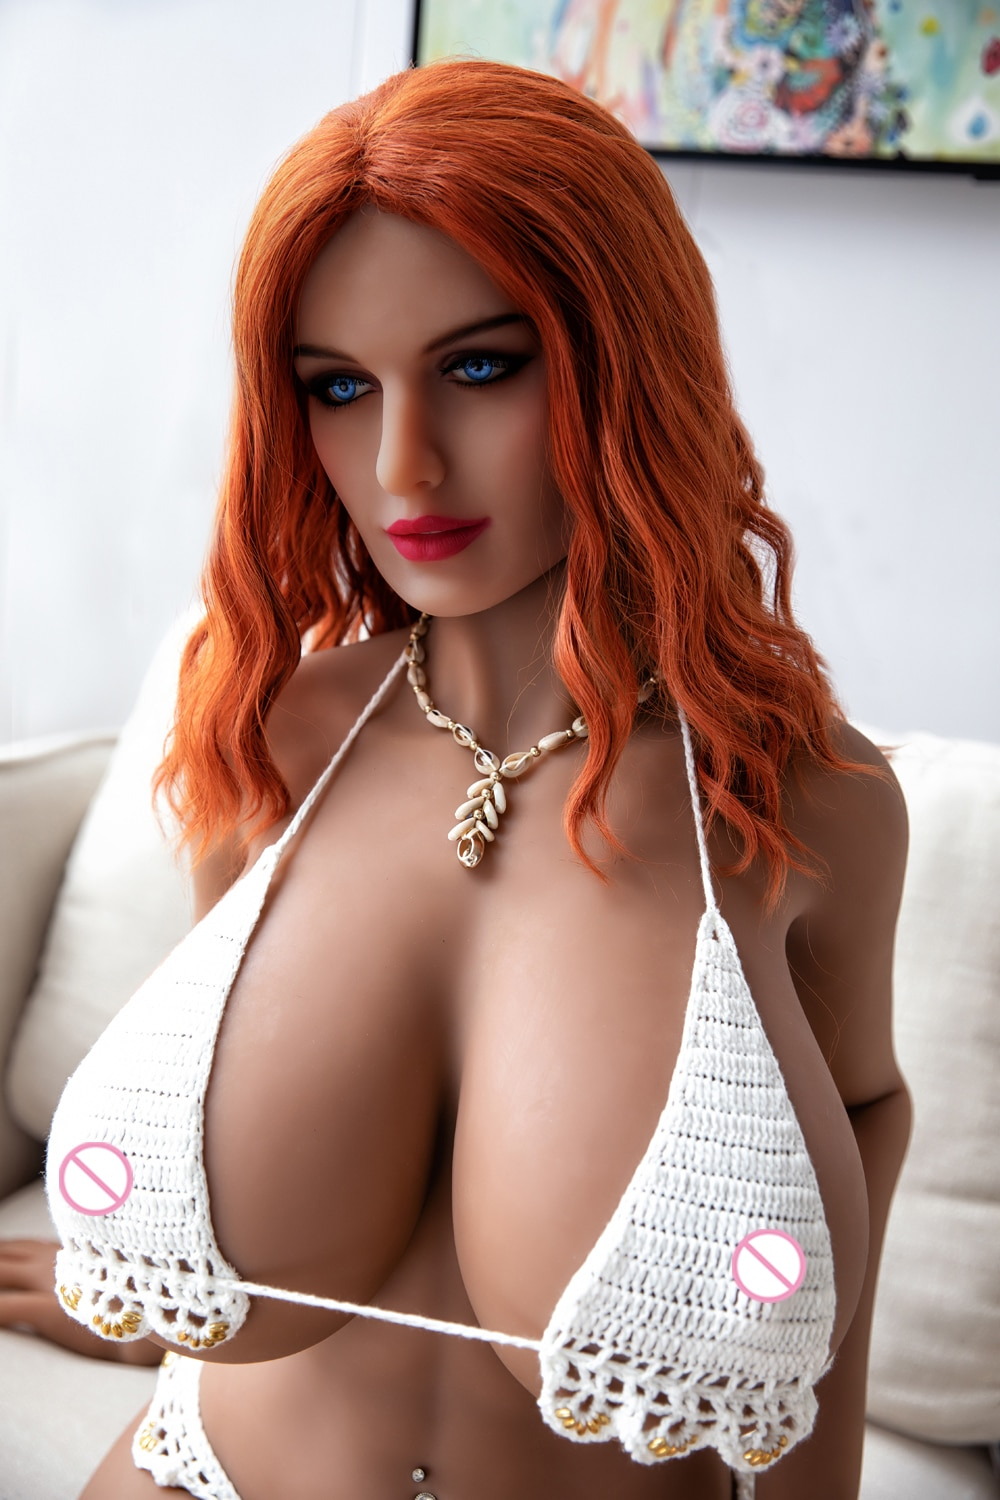 Red Hair Big Breast Sex Doll